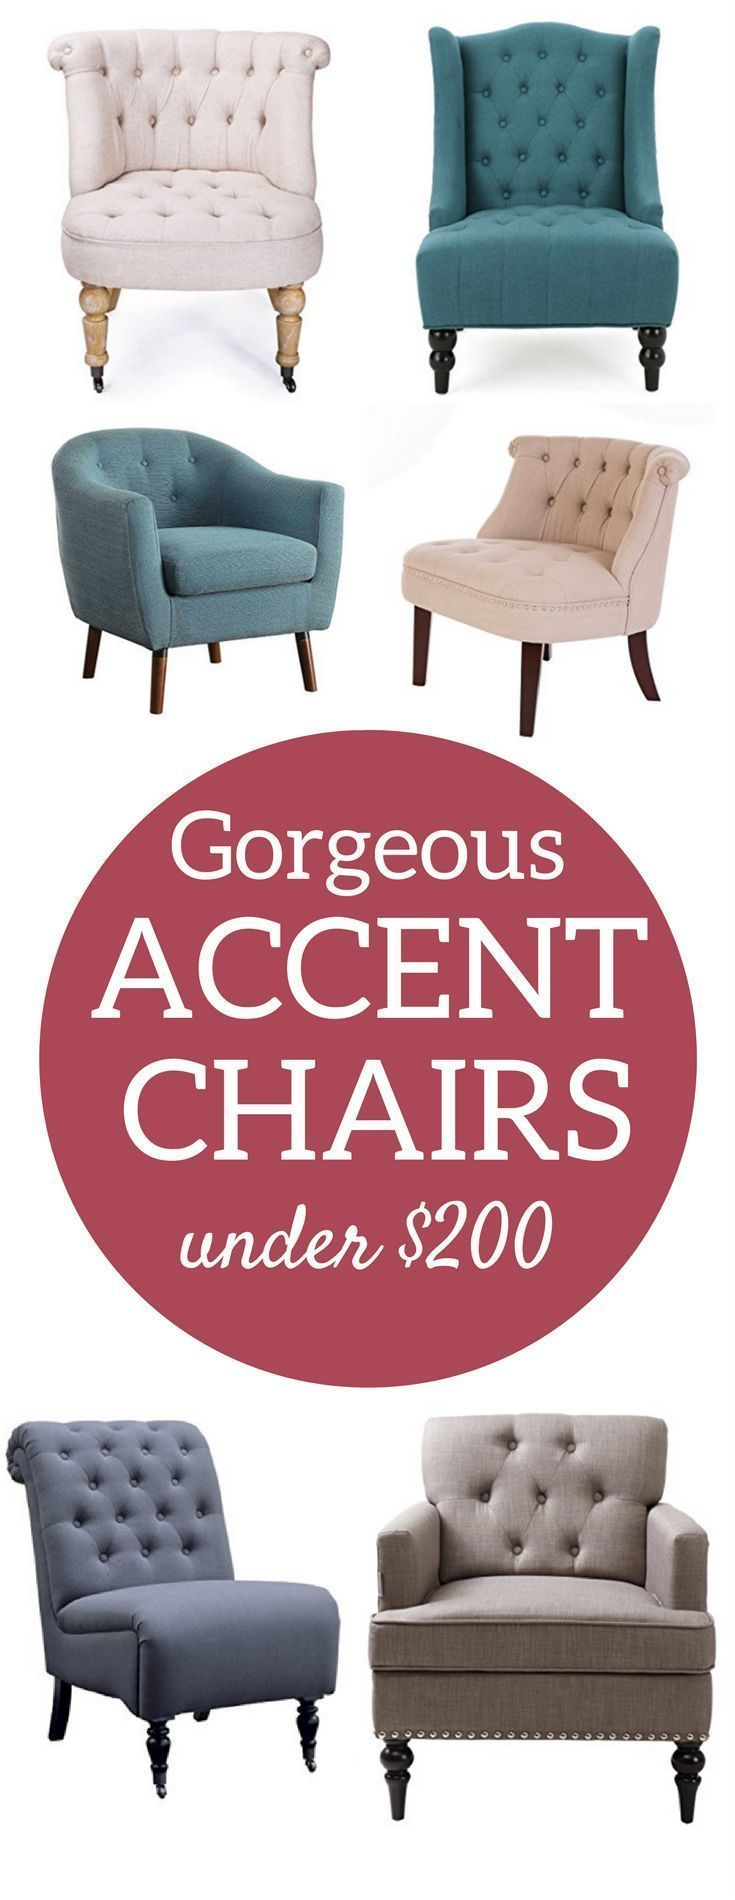 Accent Chairs   Fixer Upper Side Chairs   Living room chairs   Farmhouse chairs   tufted chairs